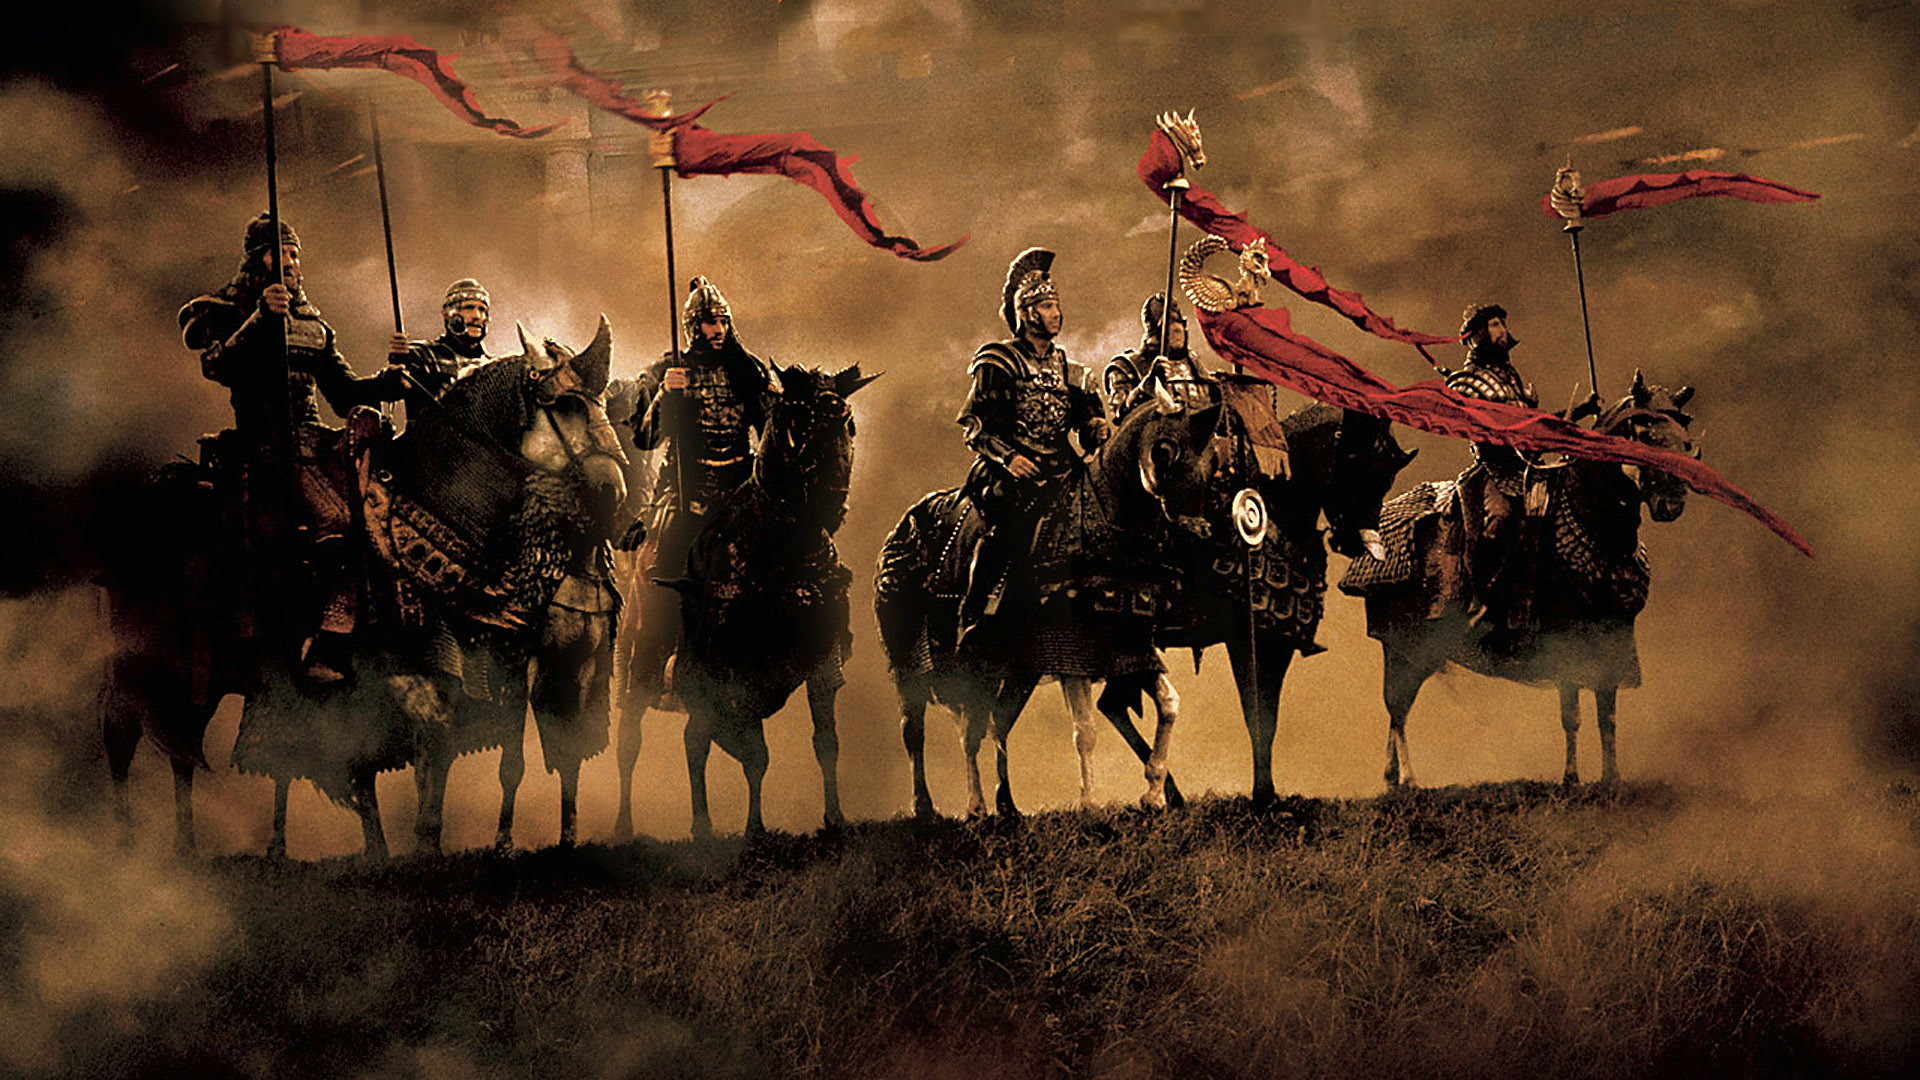 an examination of real king arthur and camelot Was there a real king arthur his court was called camelot and his round table of knights were the envy of all europe this brave and fearless king was the epitome of honour, wise leadership, and integrity.